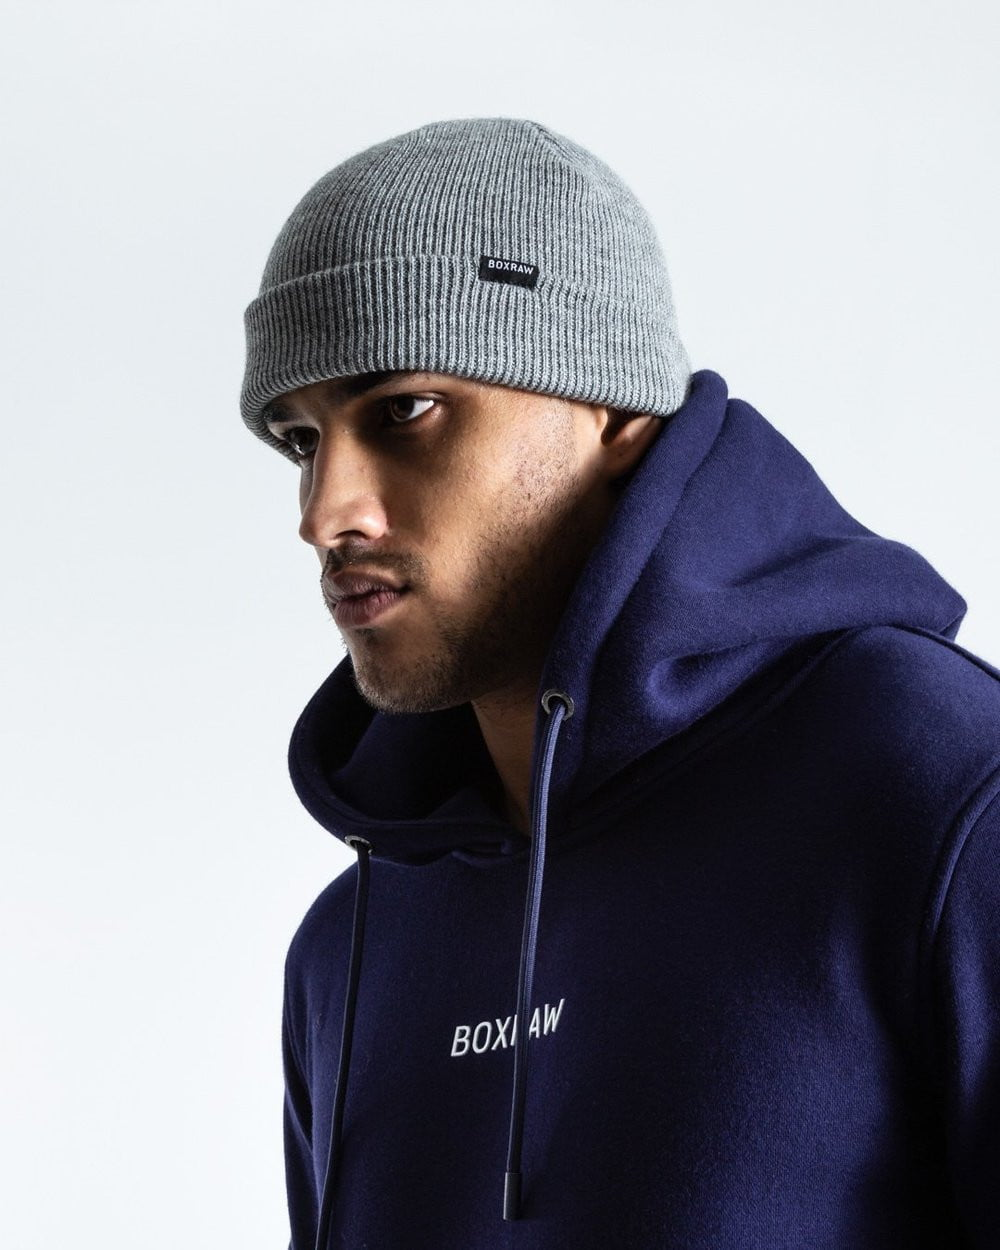 BOXRAW BEANIE HAT - GREY - Pandemic Fight Gear Inc.